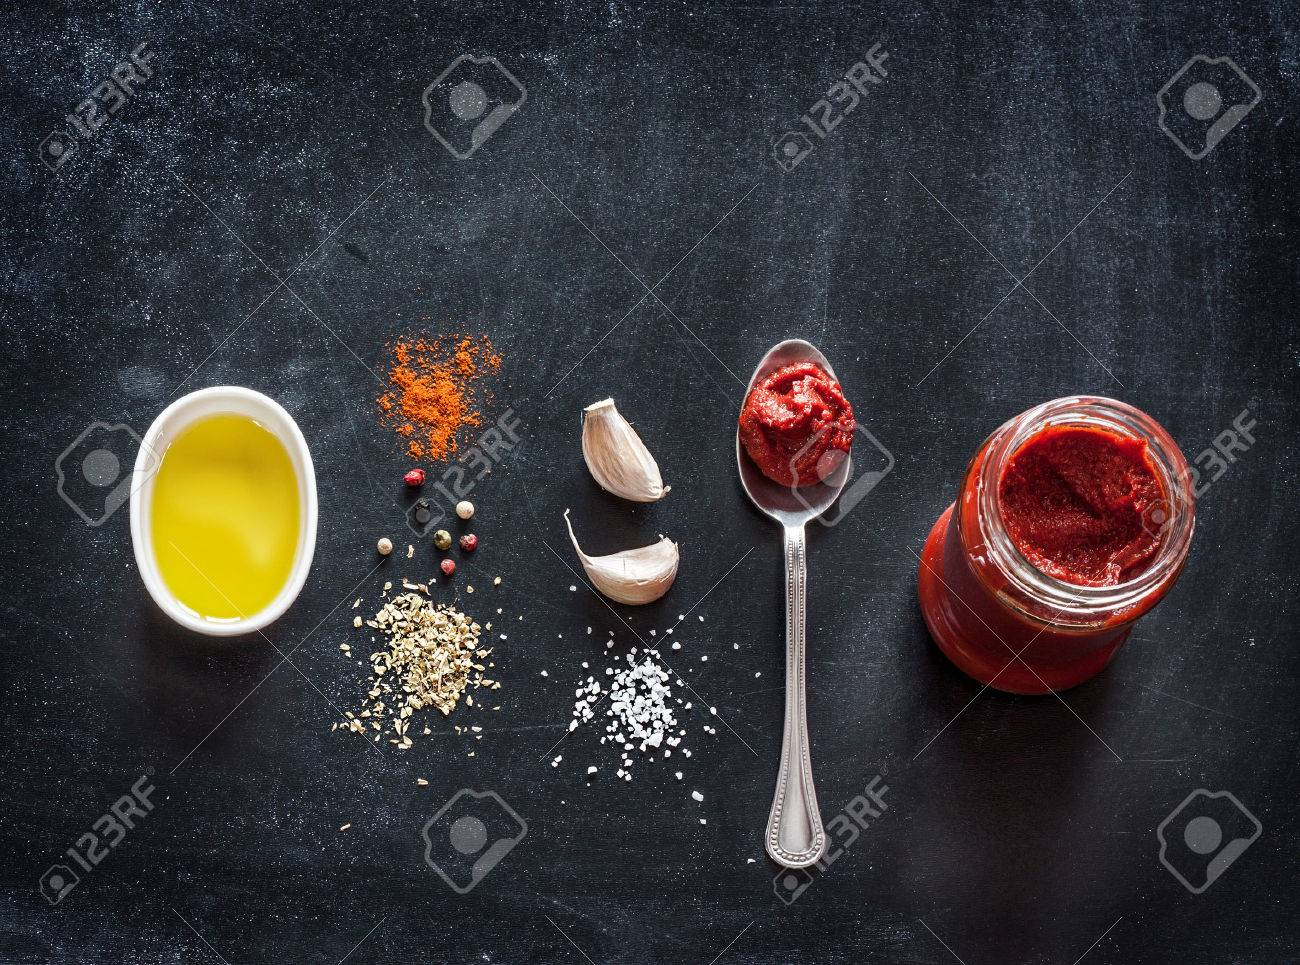 Pizza topping sauce ingredients or recipe on black background. Background with free text space. - 55317397